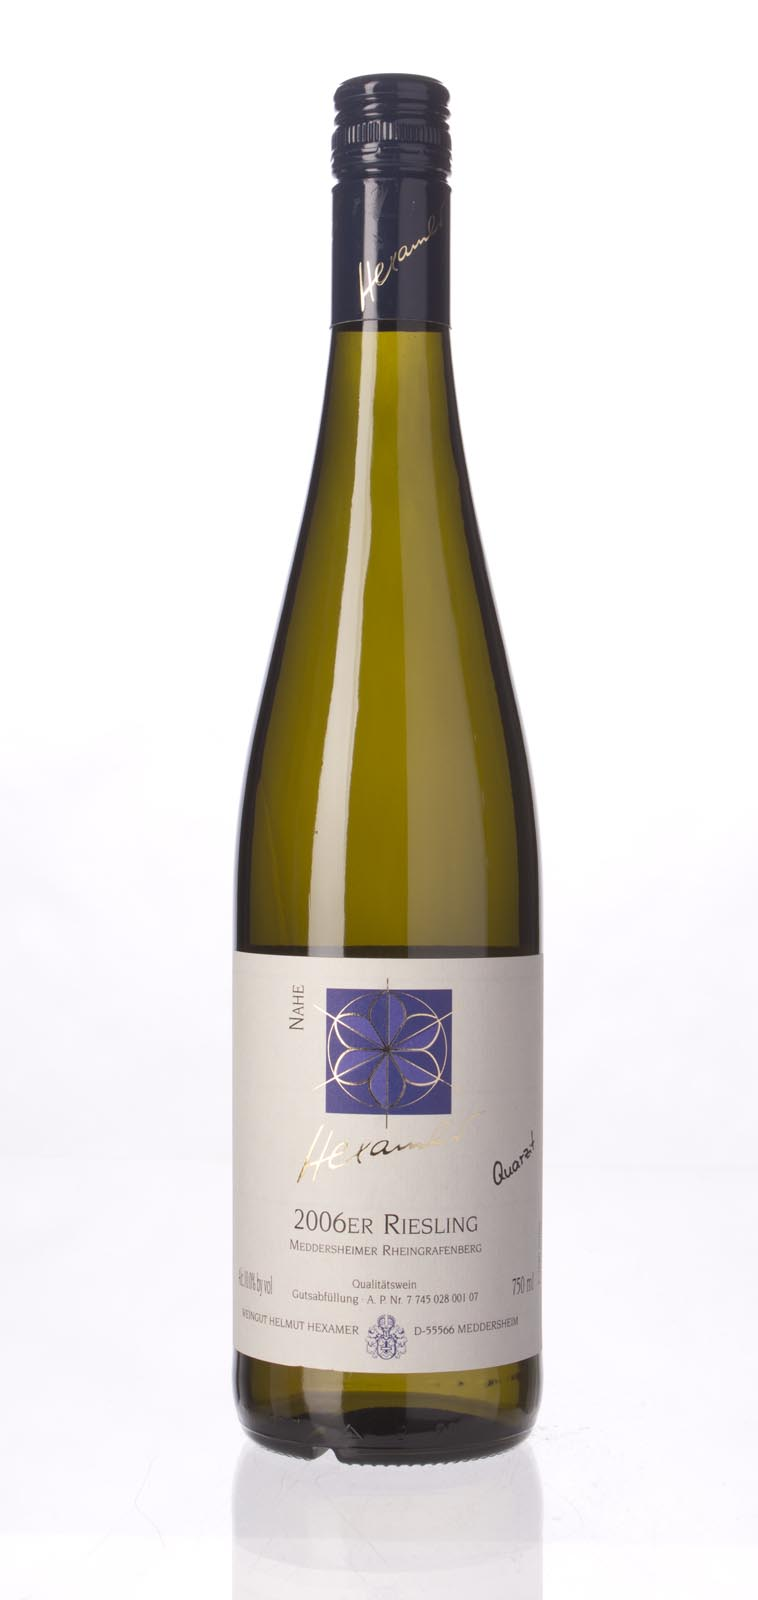 Weingut Helmut Hexamer Meddersheimer Rheingrafenberg Riesling Quarzit 2006,  () from The BPW - Merchants of rare and fine wines.